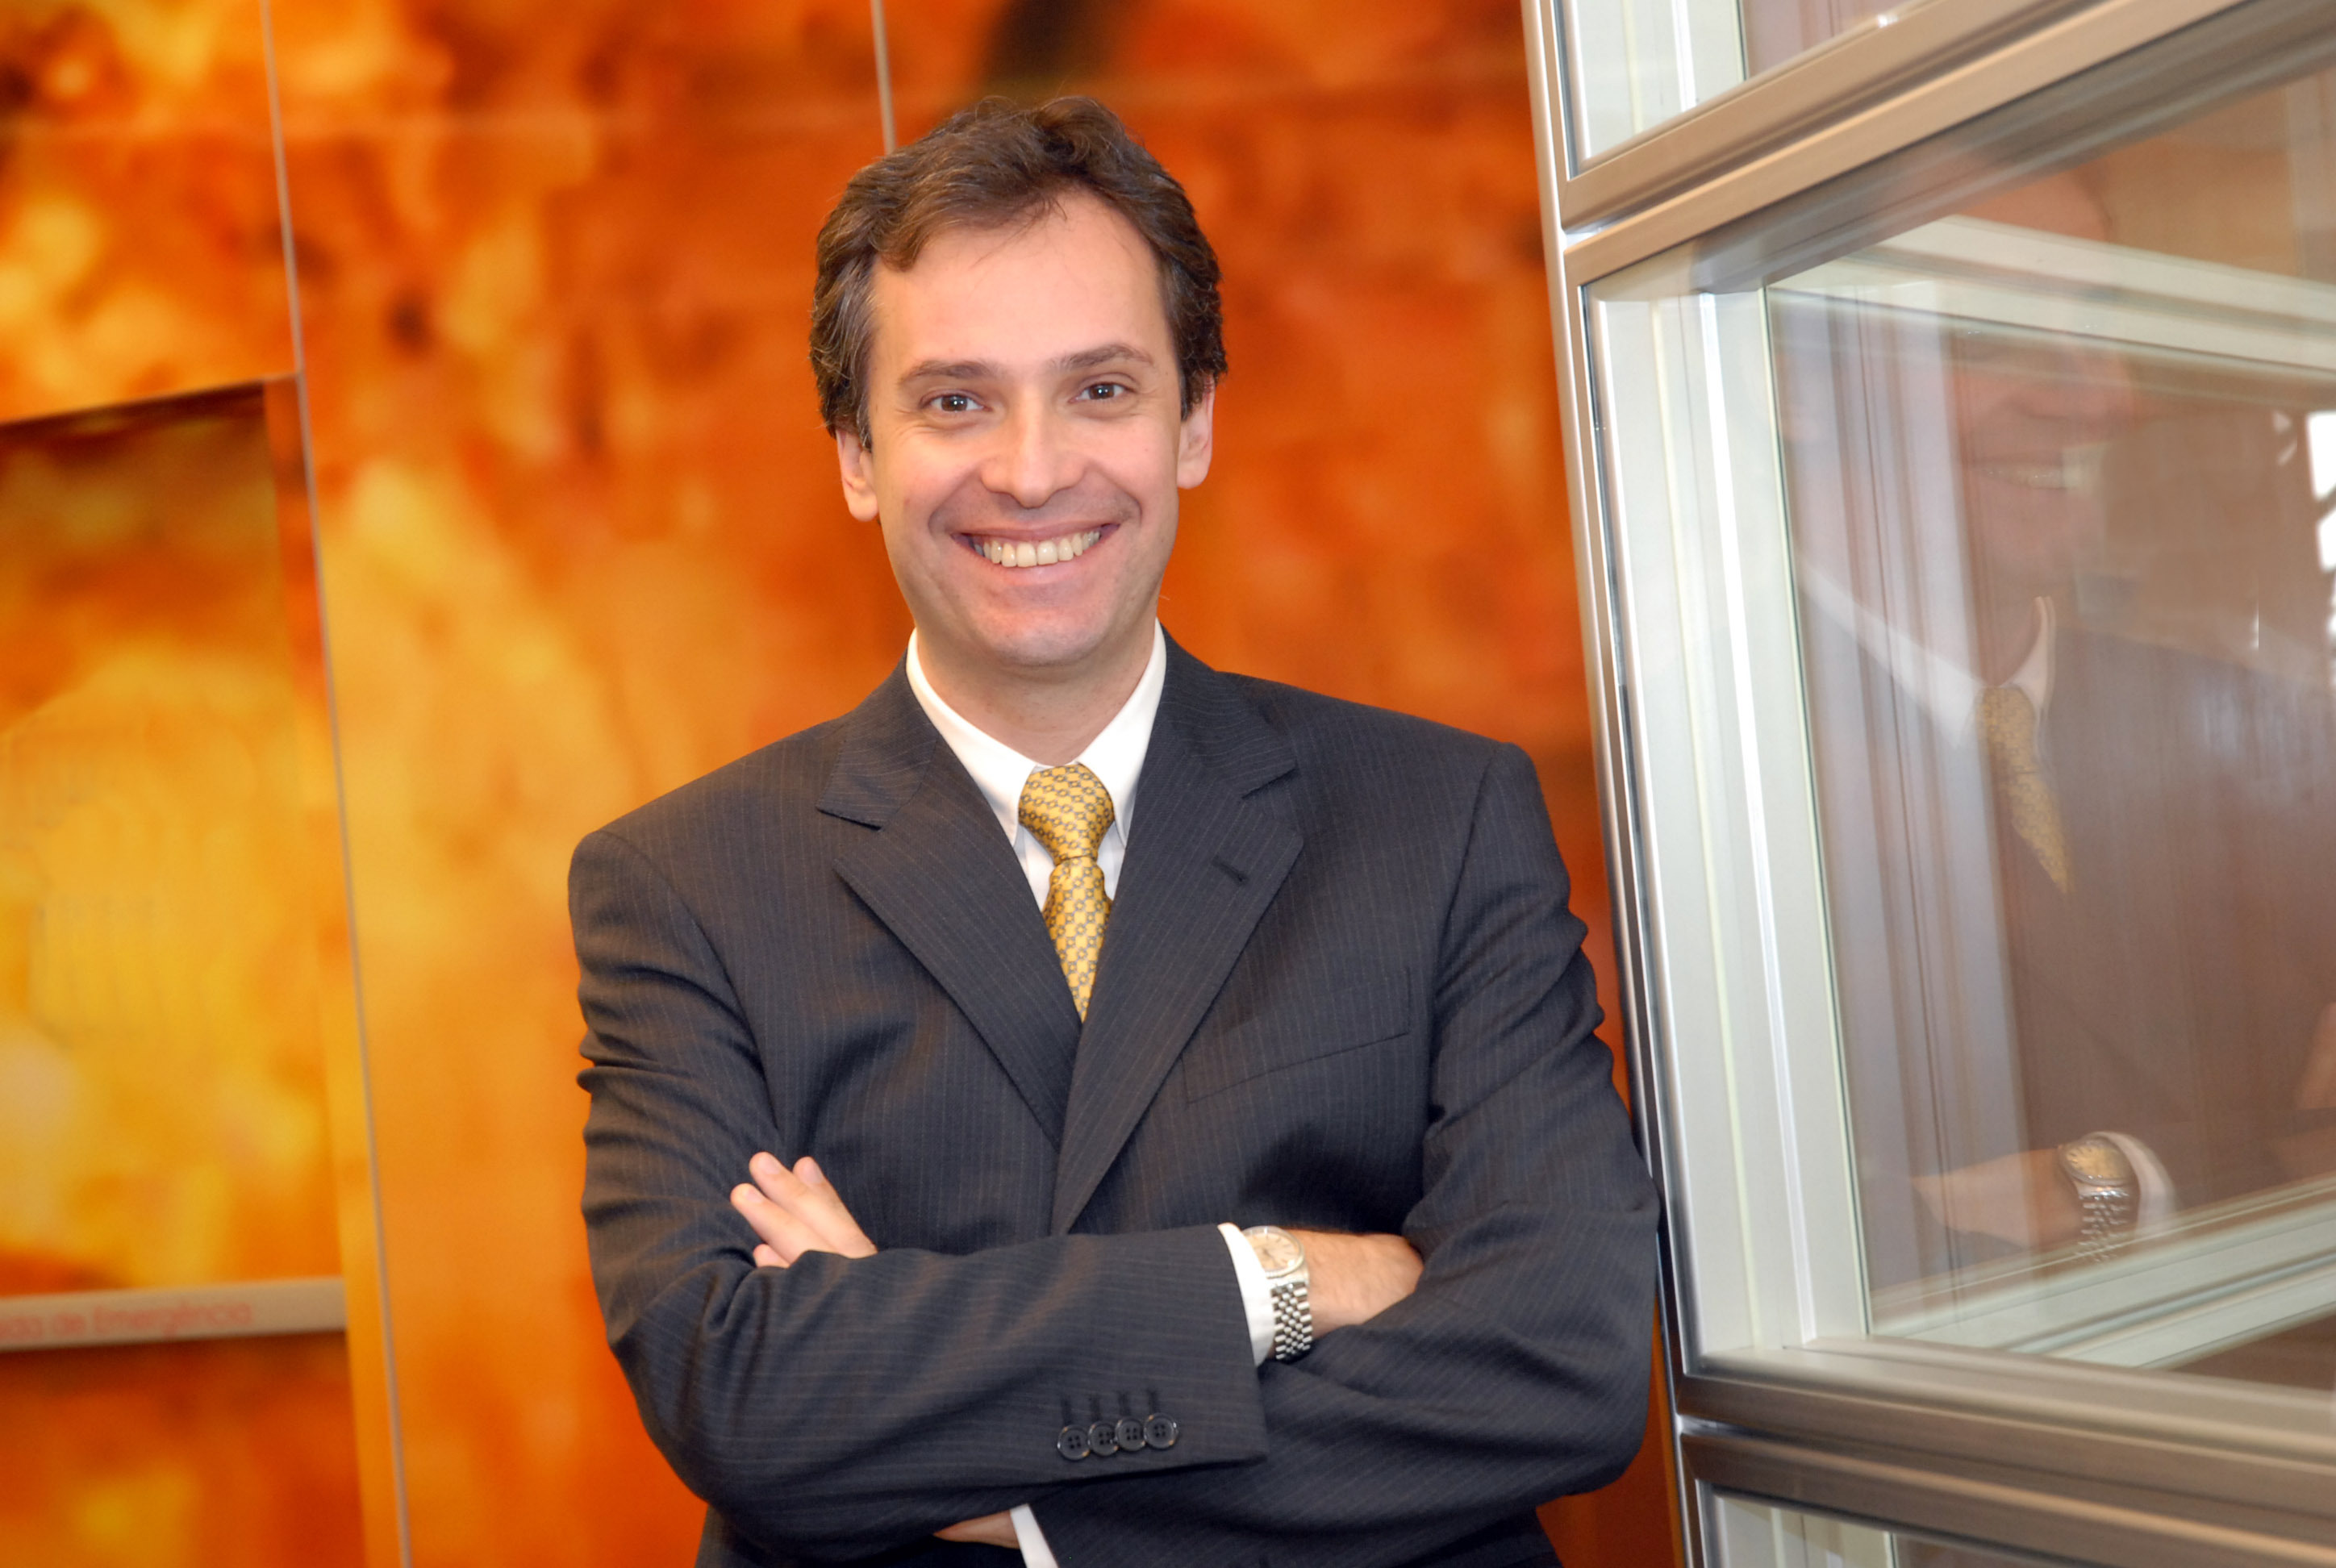 Aquilino Paolucci has been named President of Alcoa Latin America and the Caribbean (LAC) and President of Global Primary Products (GPP) for Latin America and the Caribbean, effective as of March 1. (Photo: Business Wire)